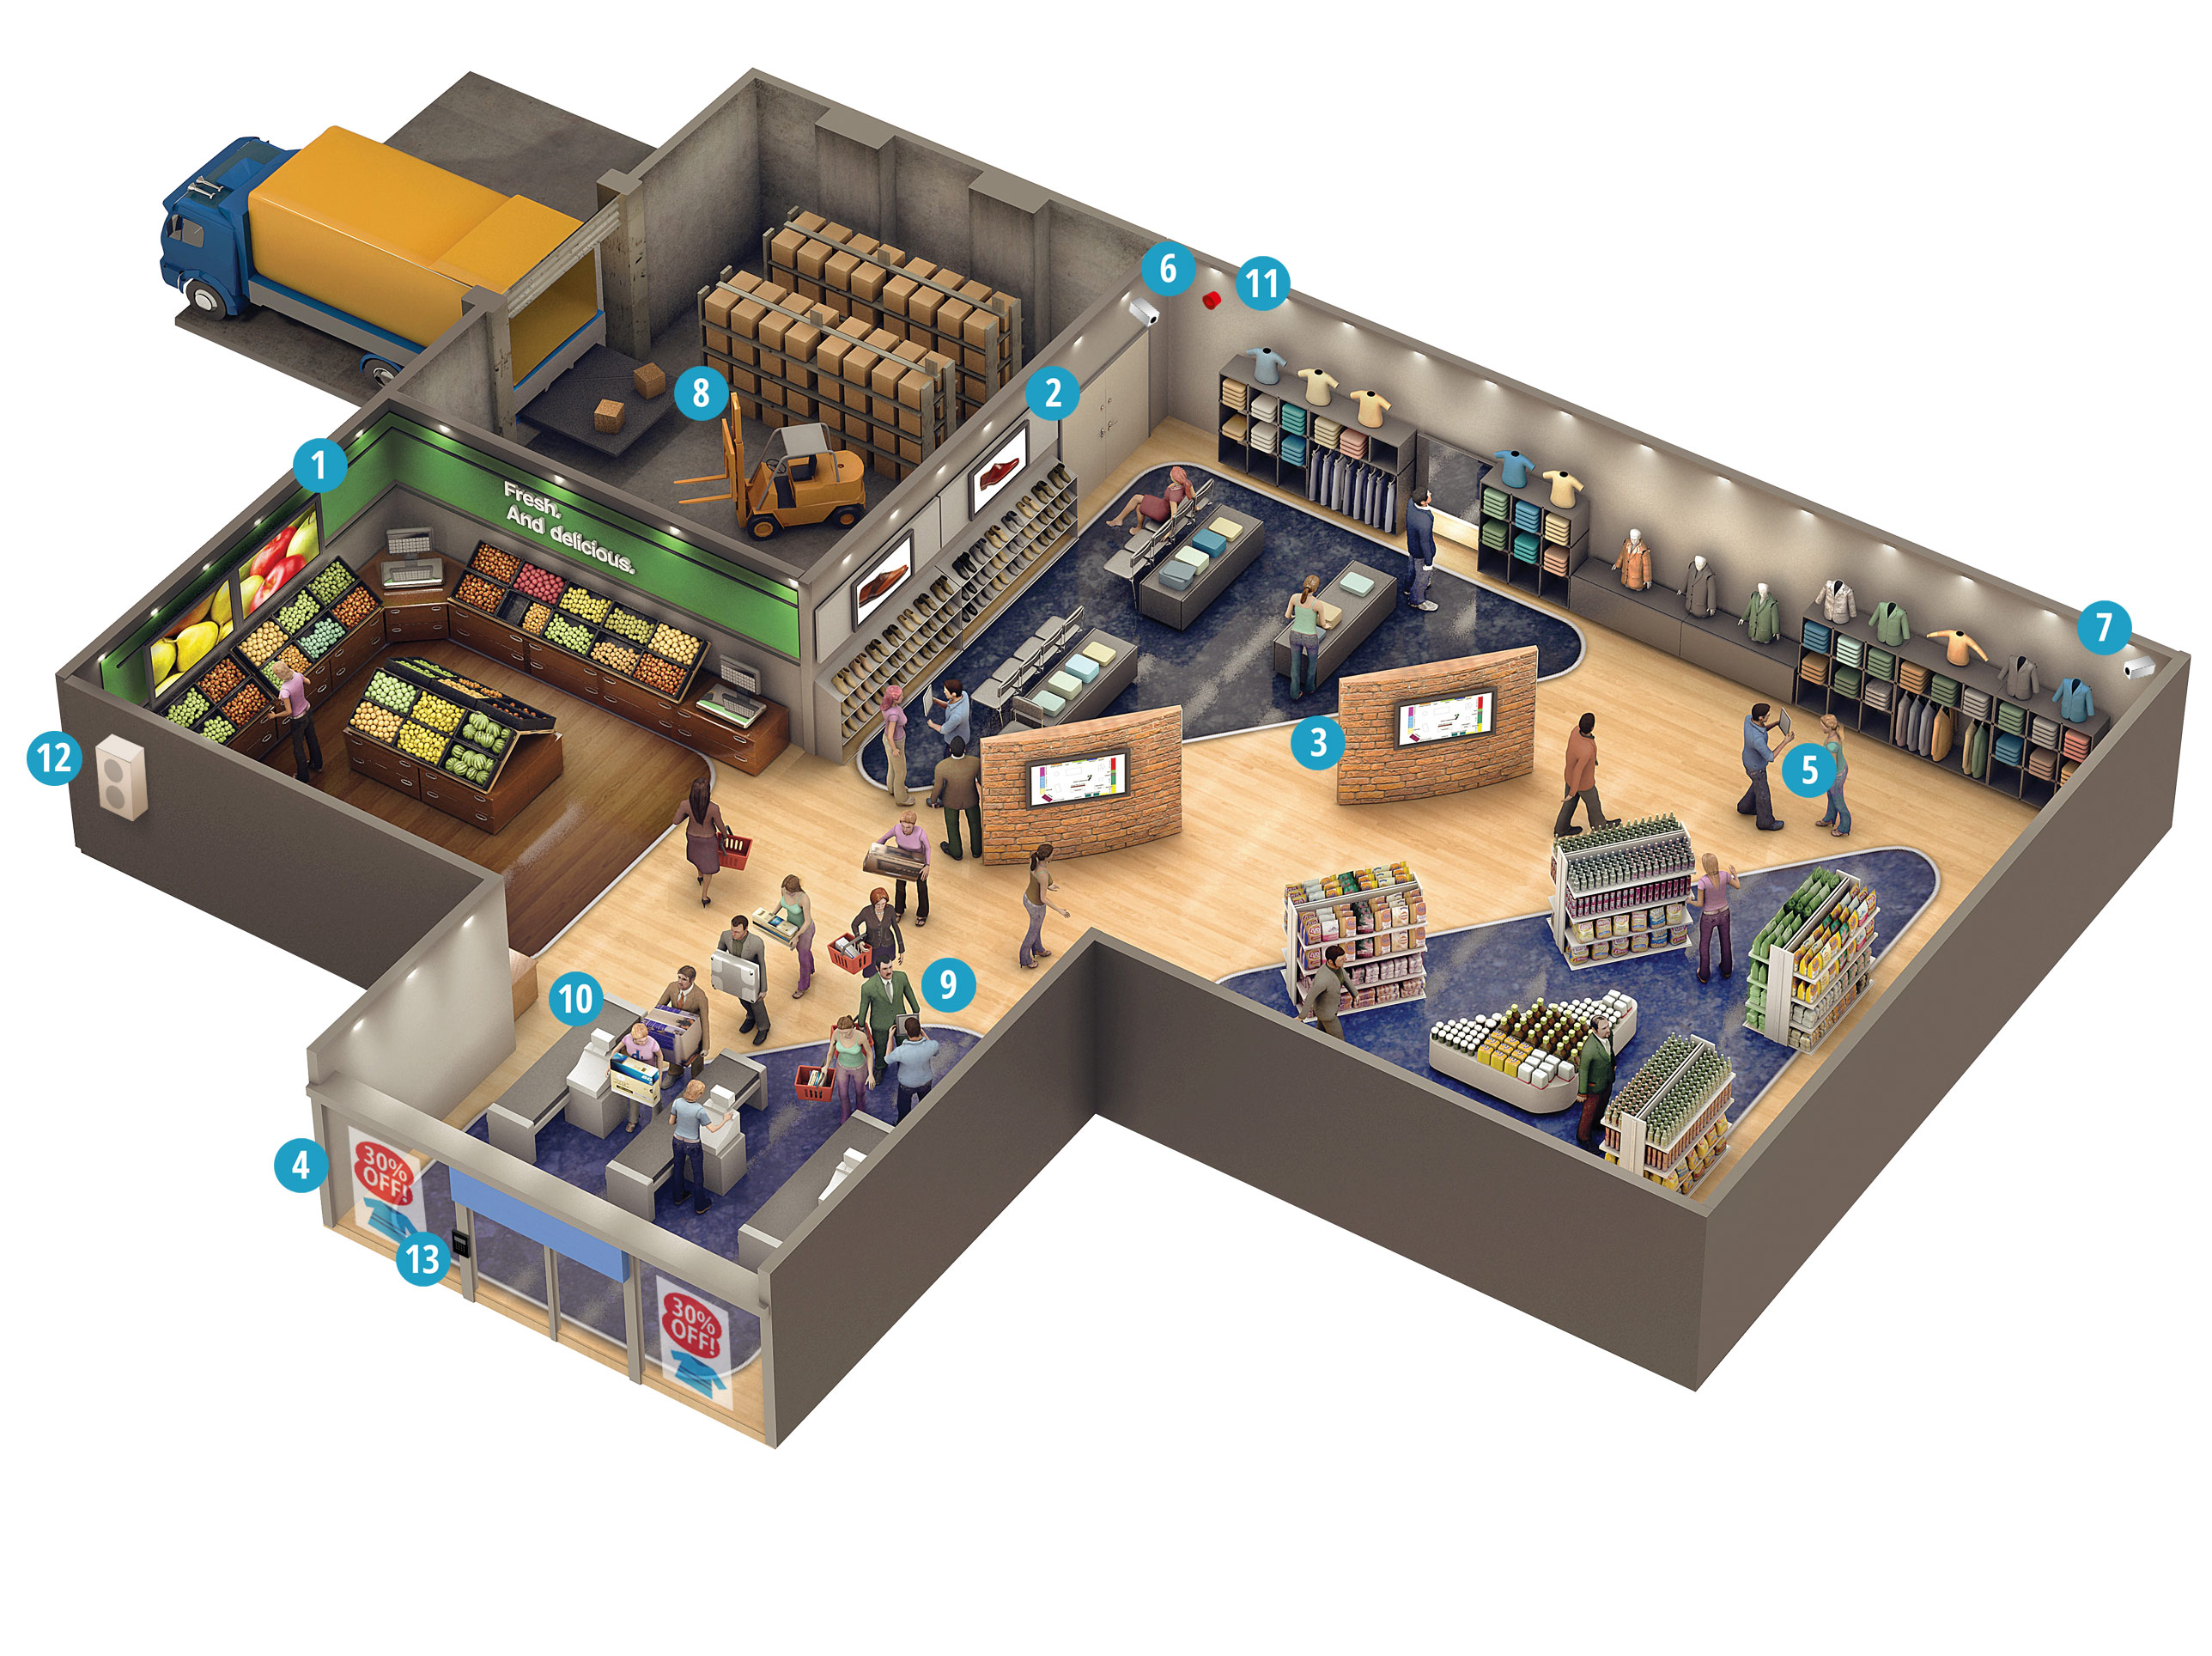 How do Panasonic solutions support the chain store sector?